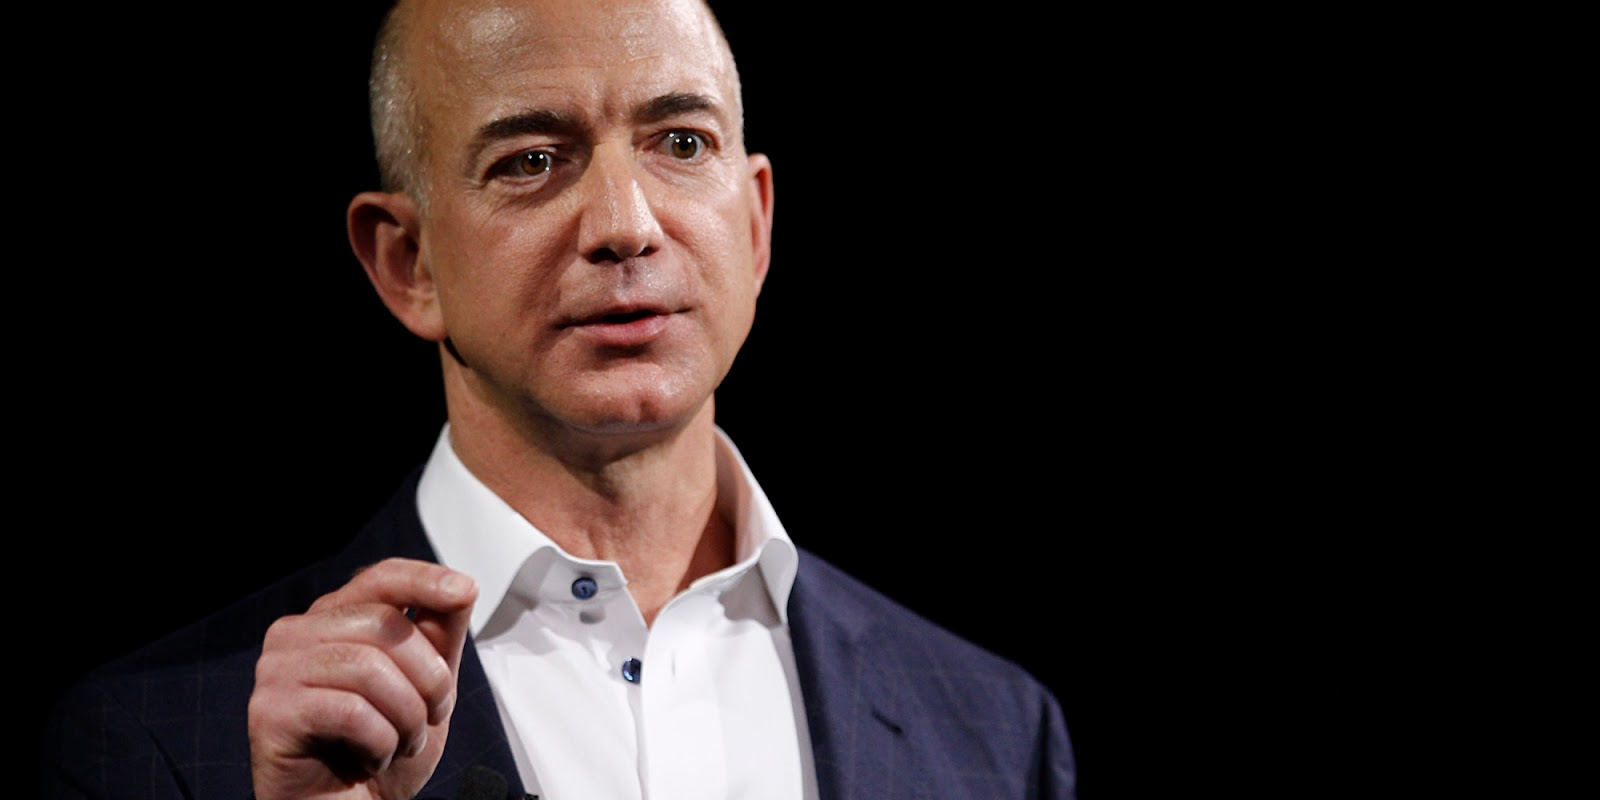 Jeff Bezos Becomes World's Richest Man For Several Hours | Daily Updates